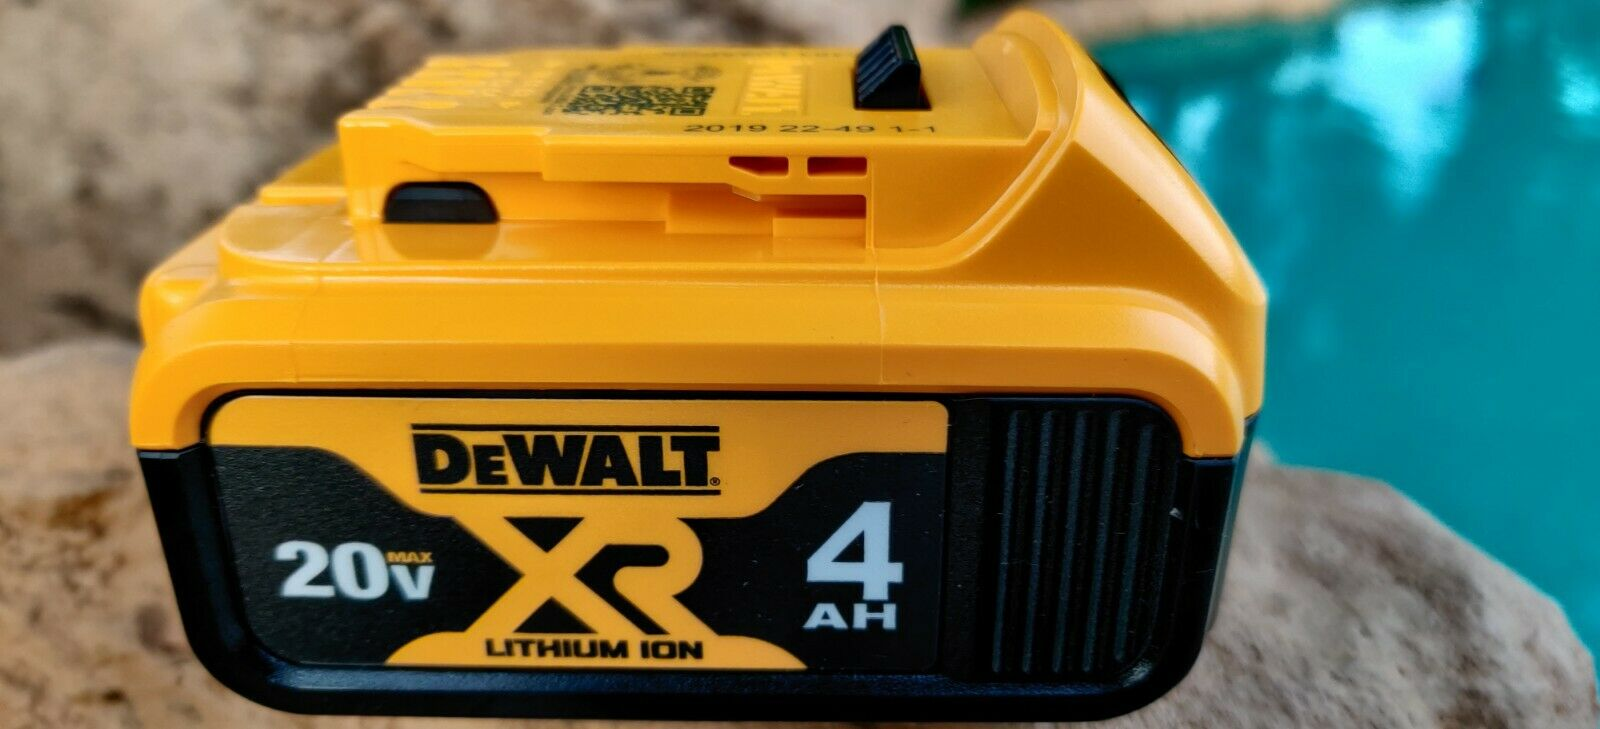 DeWalt DCB204 20V 20 Volt 4 Amp Lithium Ion Battery